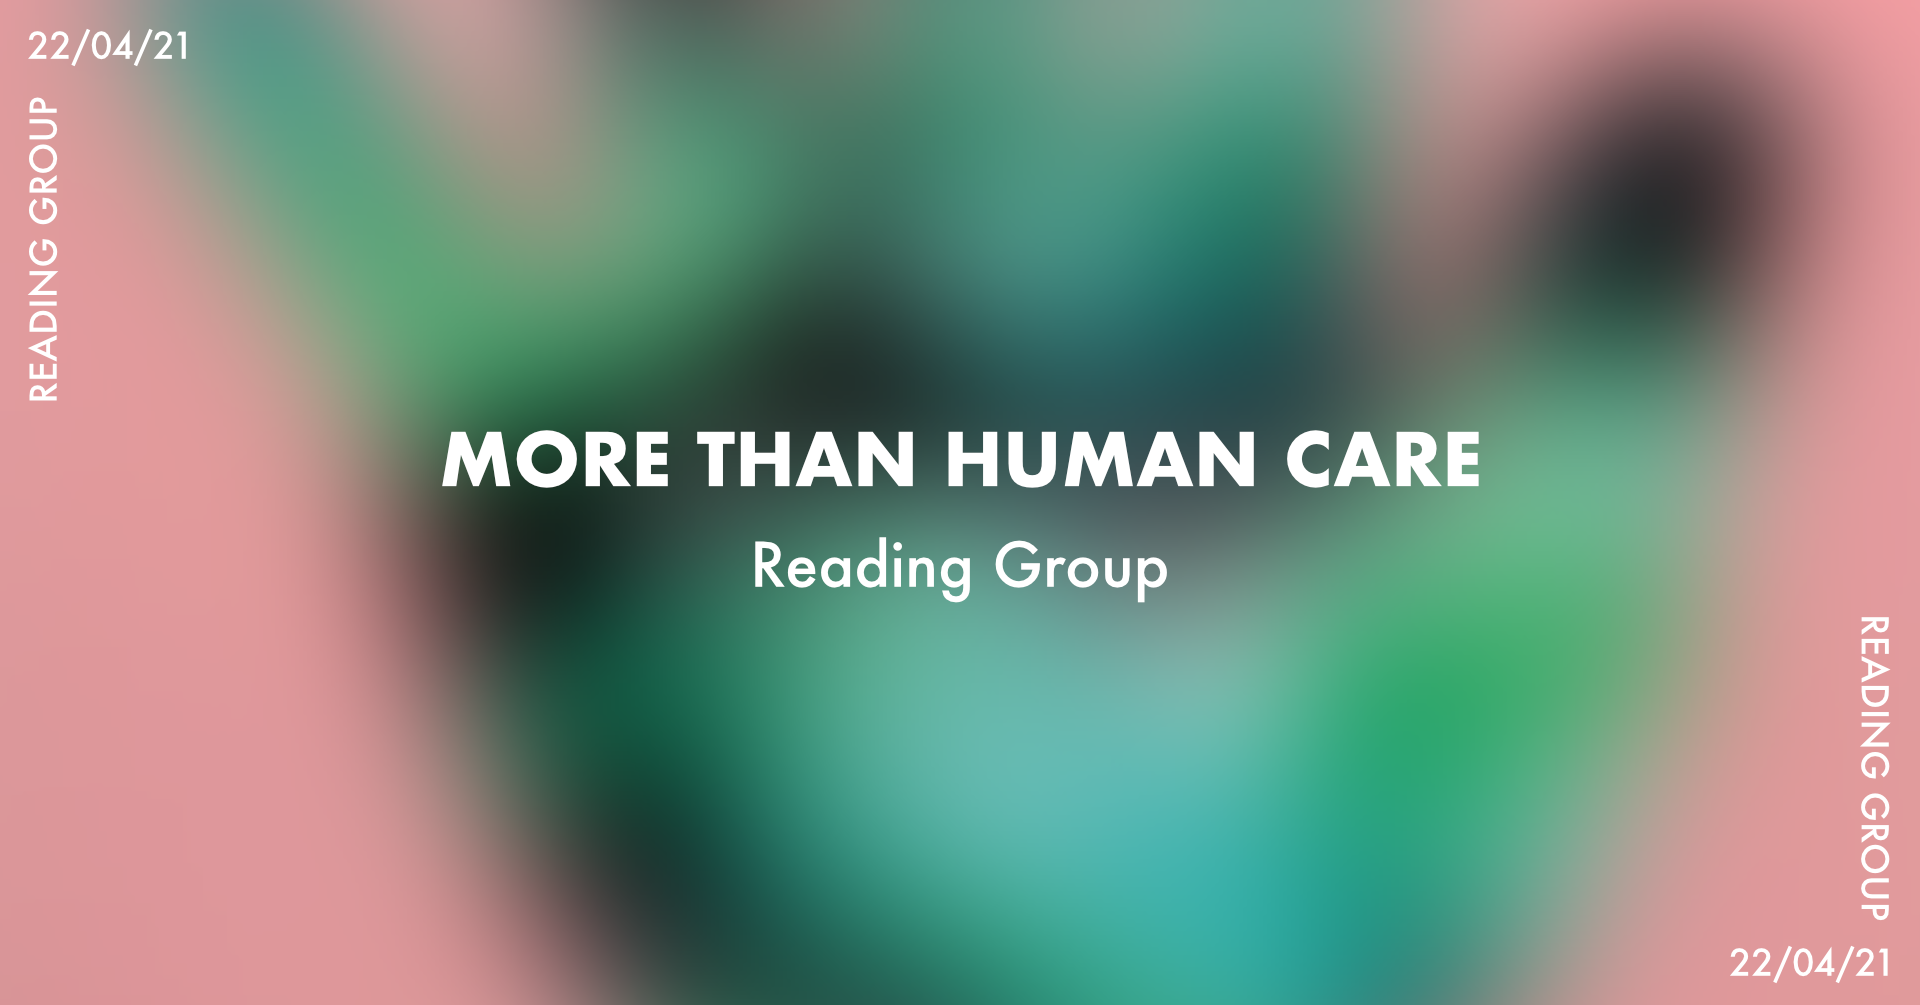 More than Human Care reading group image